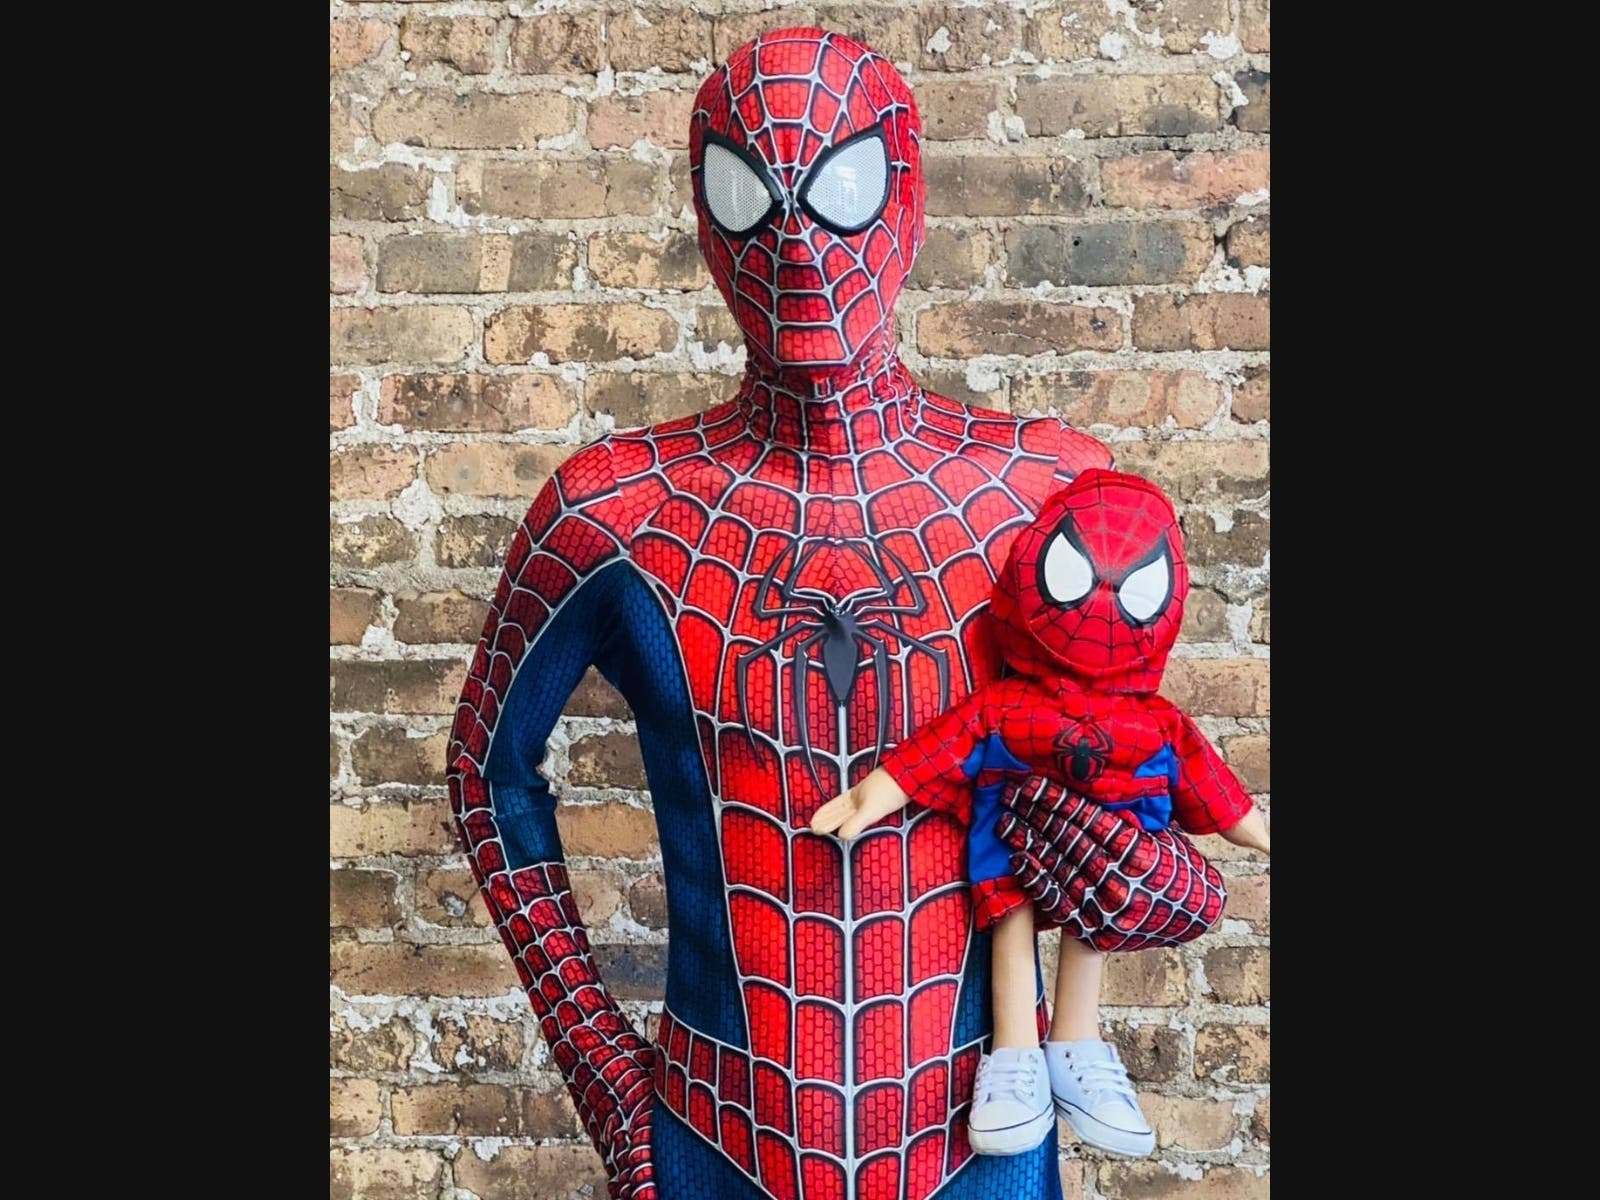 New Berlin Man Dons Spider-Man Costume To Make People's Day